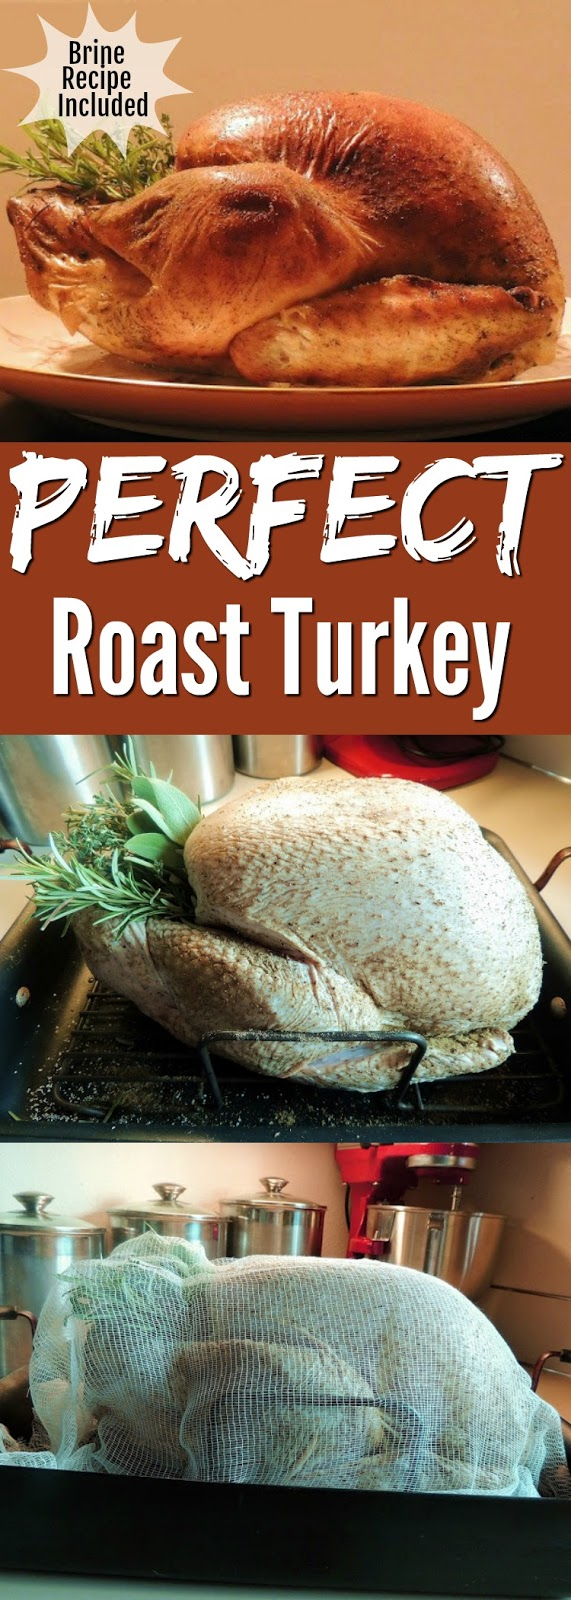 The Perfect Roast Turkey - This roast turkey recipe, including the brine, will ensure a juicy, flavorful turkey, with crispy skin every time! #turkey #holidayrecipe #thanksgiving #christmas #howtoroastturkey #keto #lowcarb #recipe | bobbiskozykitchen.com